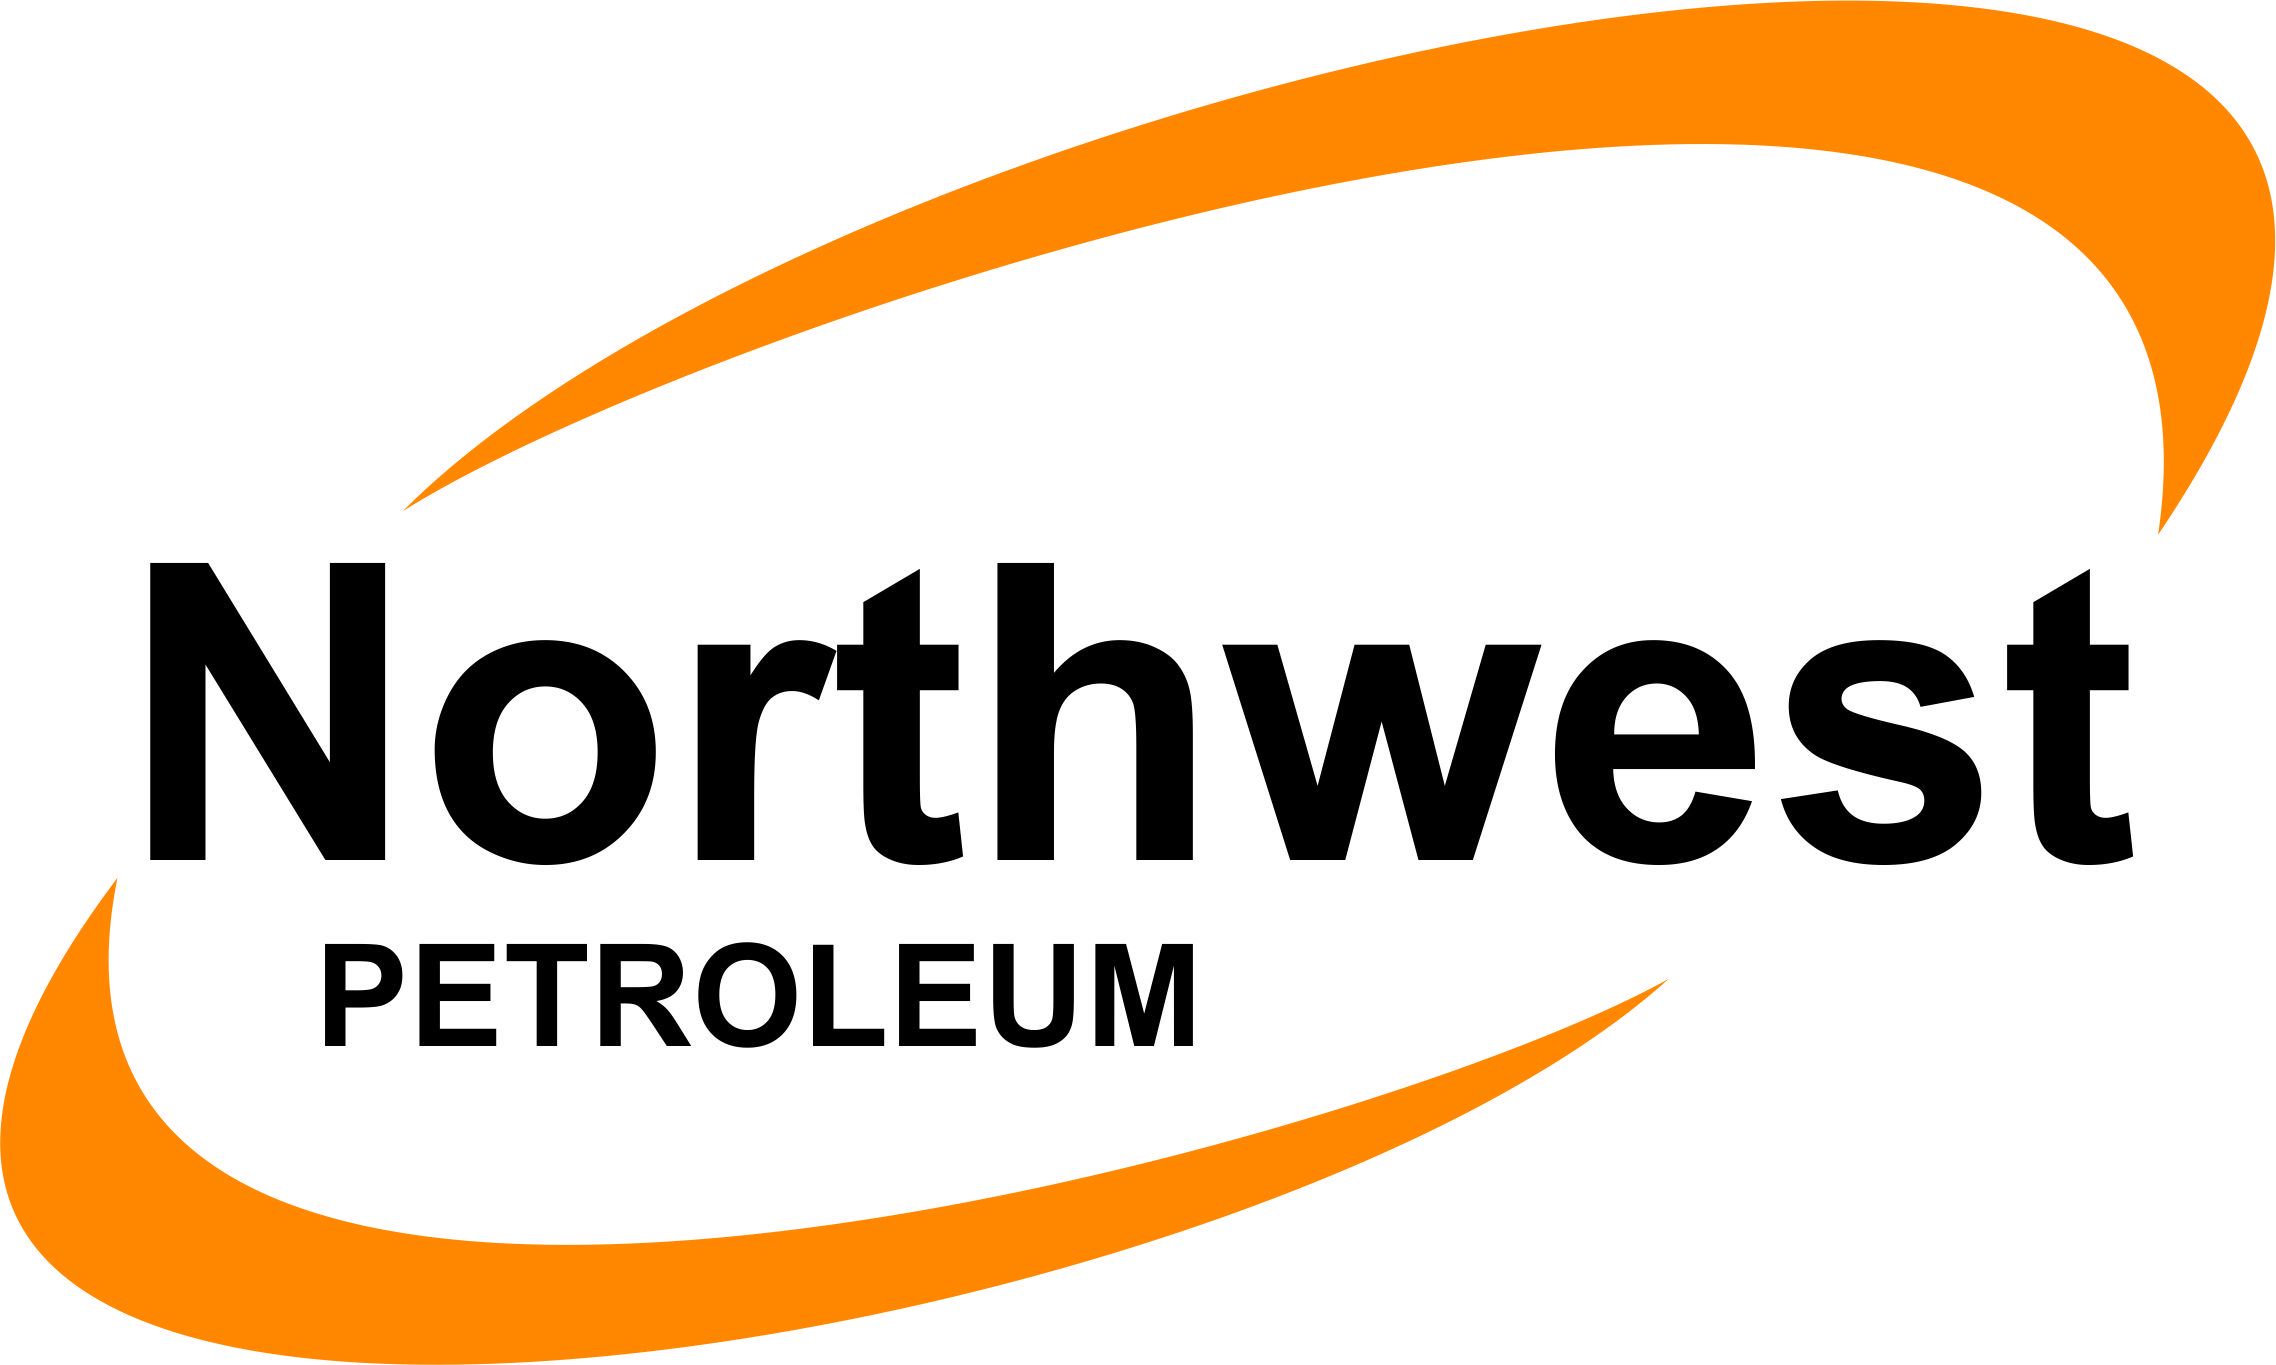 Northwest Petroleum To Raise Funds For The Blind And